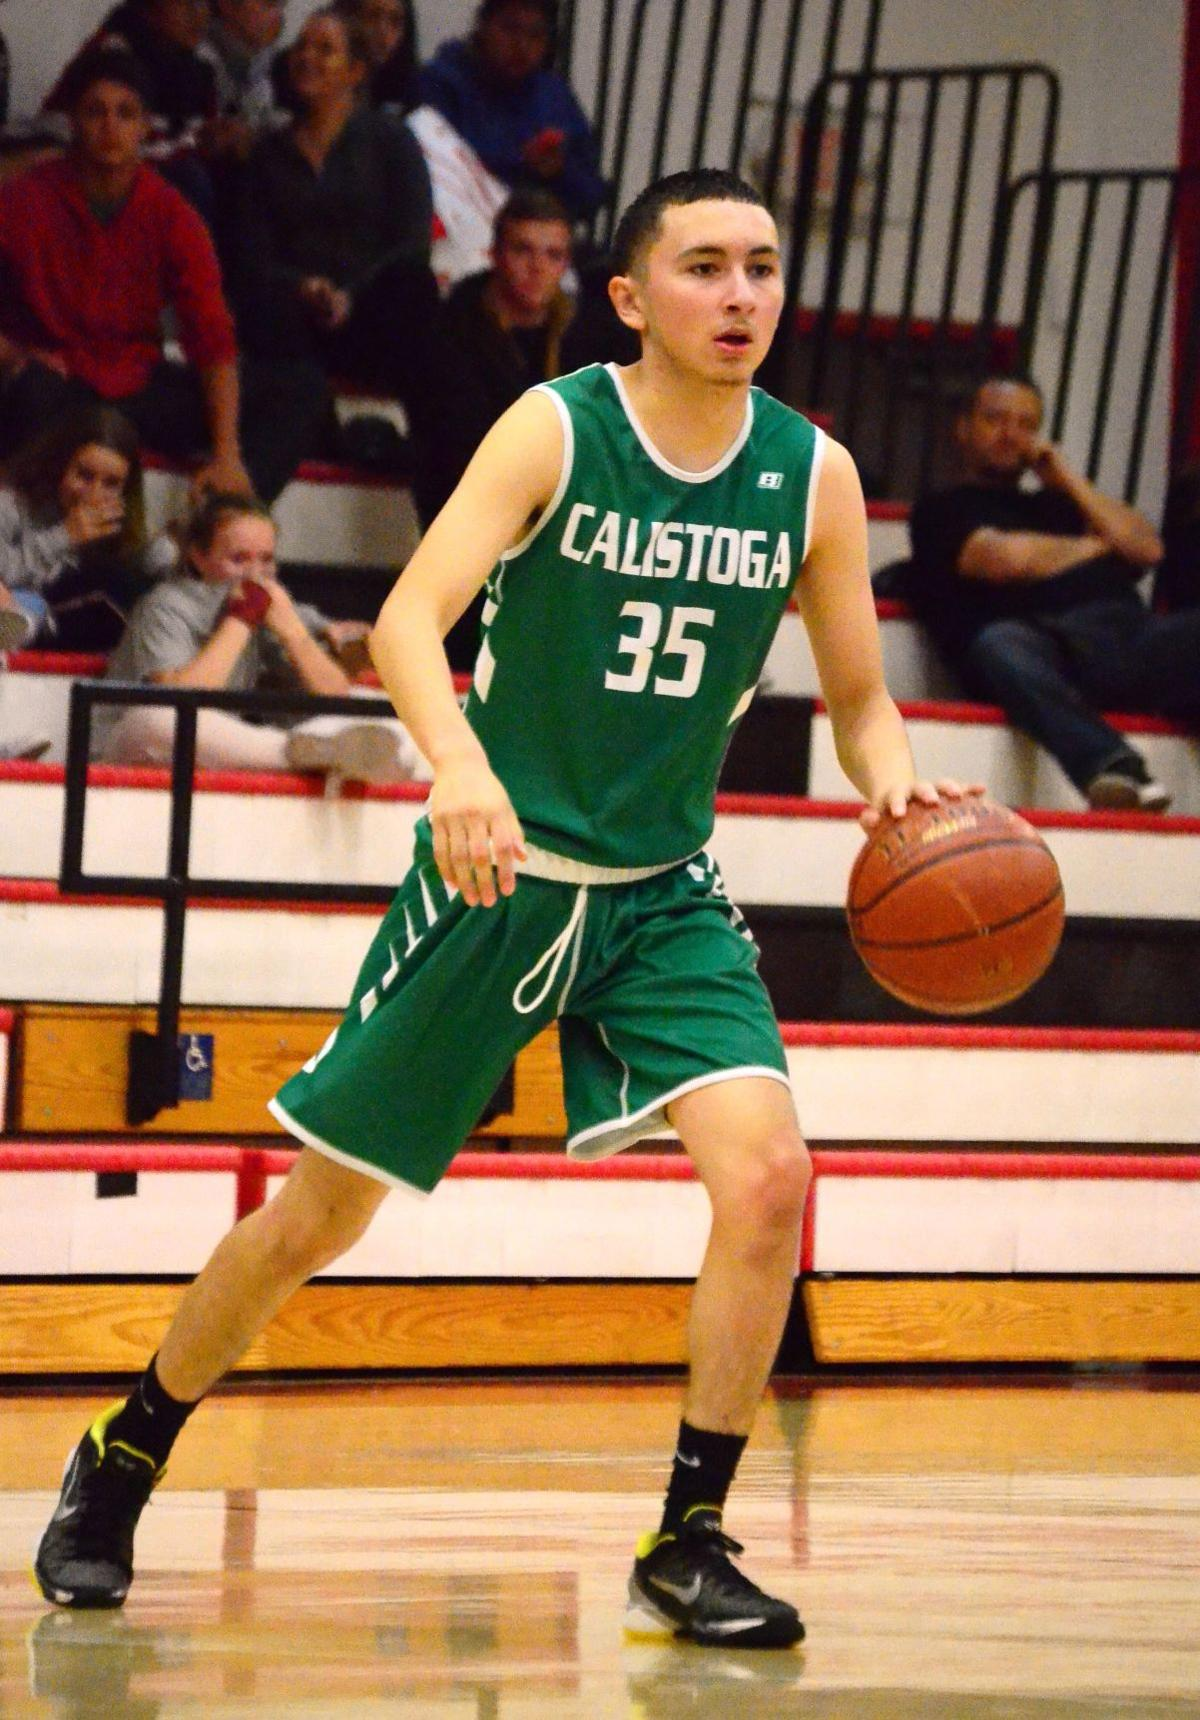 Calistoga High boys basketball